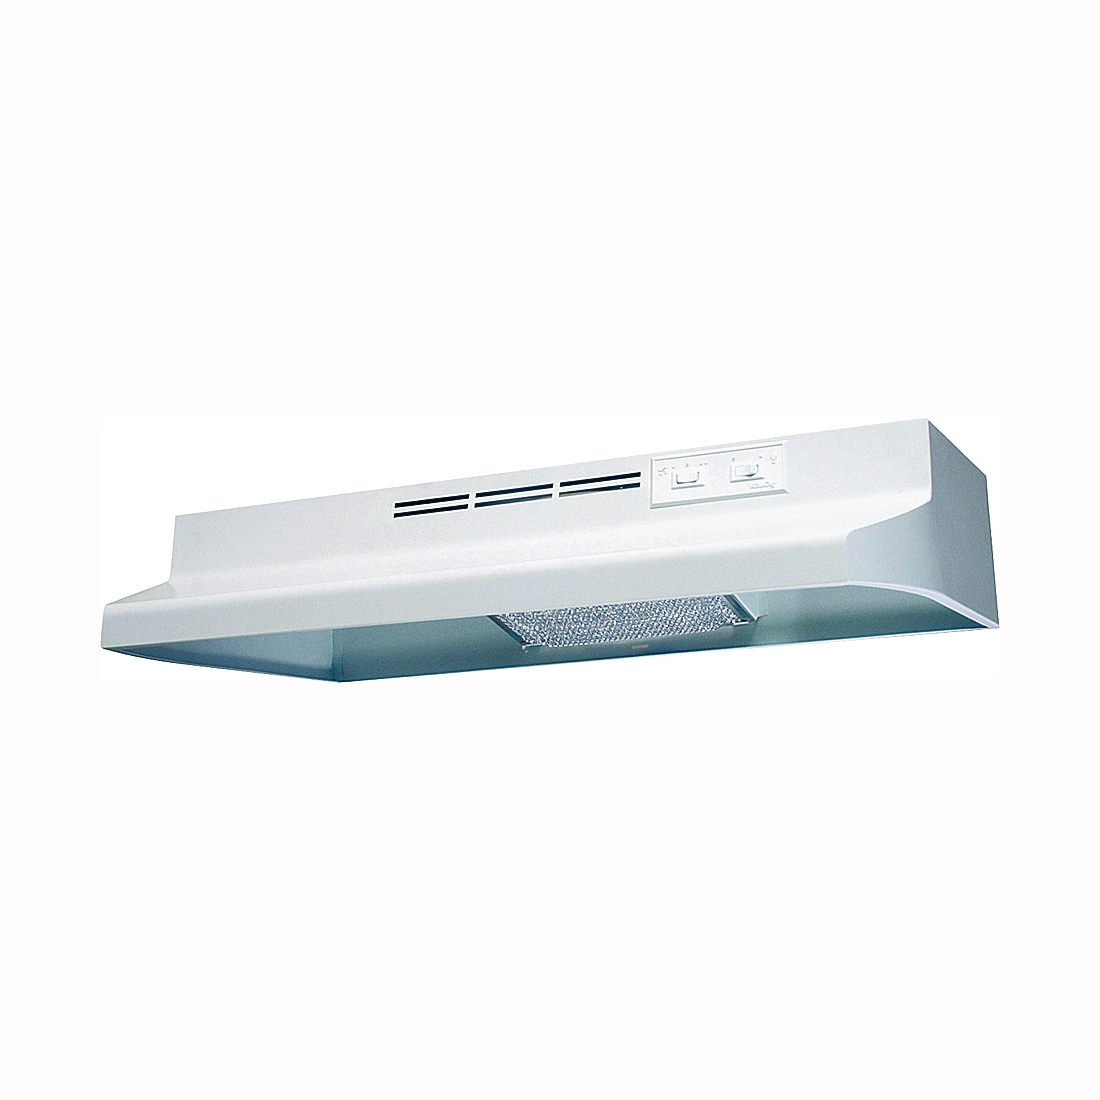 Picture of Air King Advantage AD AD1303 Range Hood, 180 cfm, 2 Fan, 30 in W, 12 in D, 6 in H, Cold Rolled Steel, White